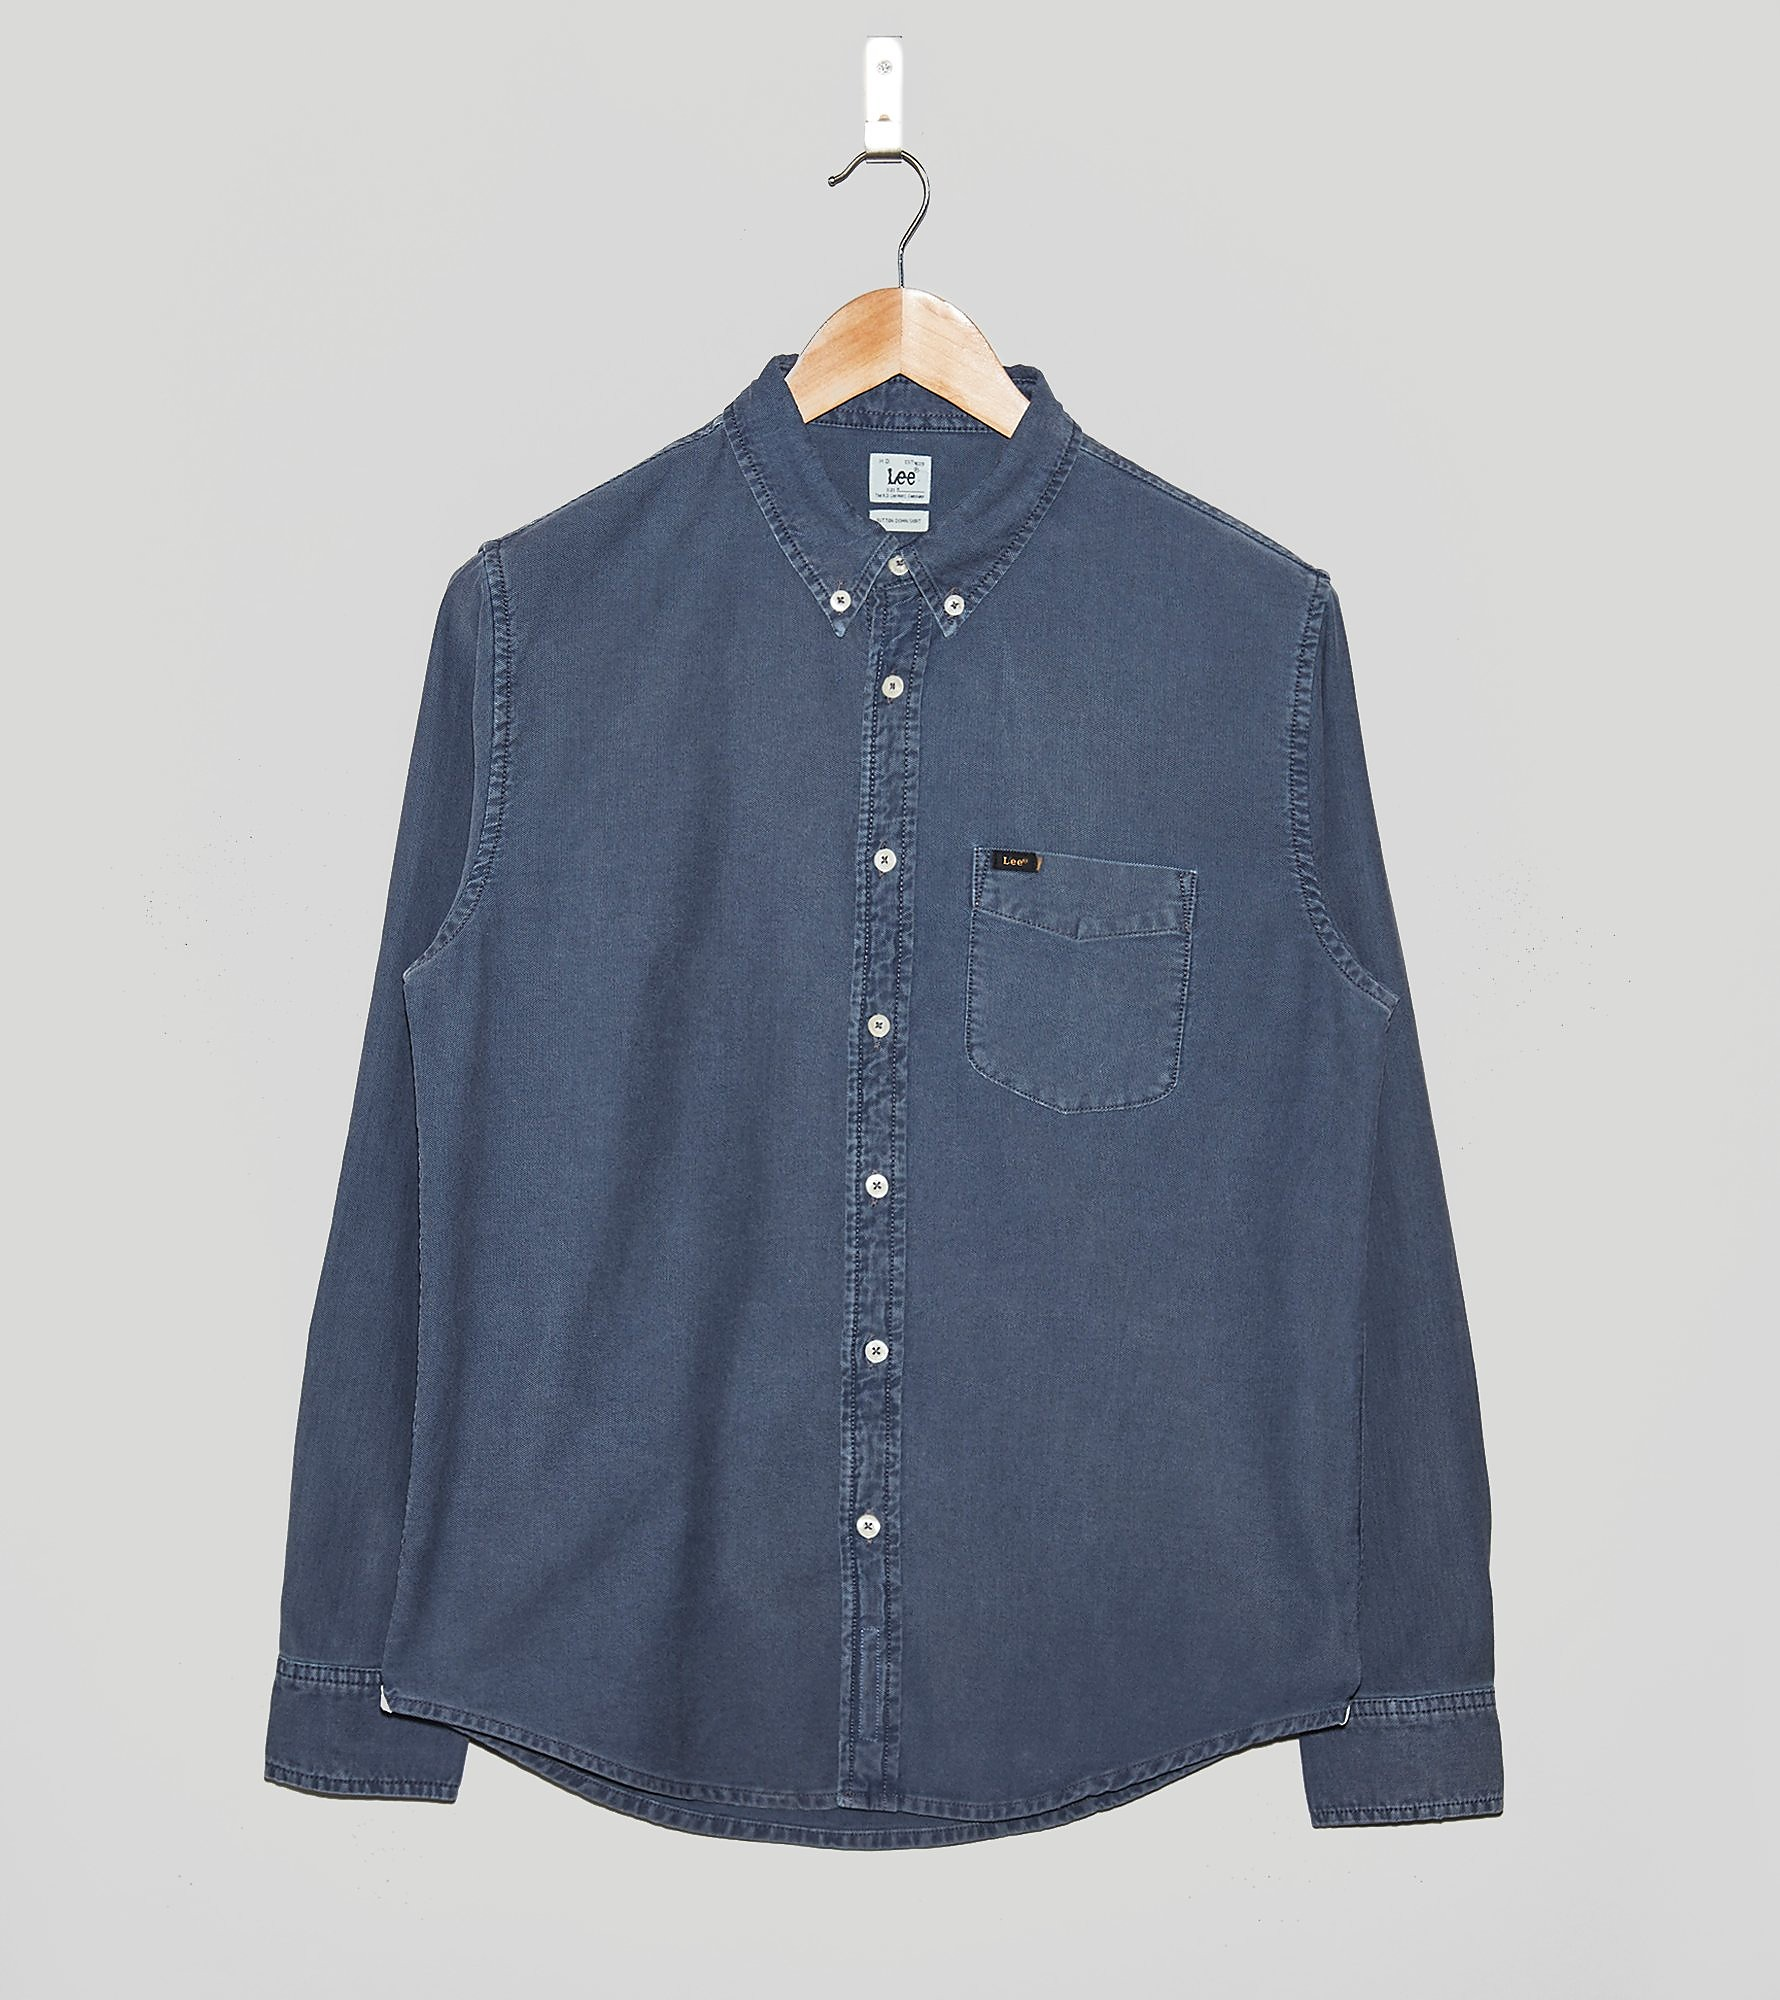 Lee Button Down Oxford Shirt